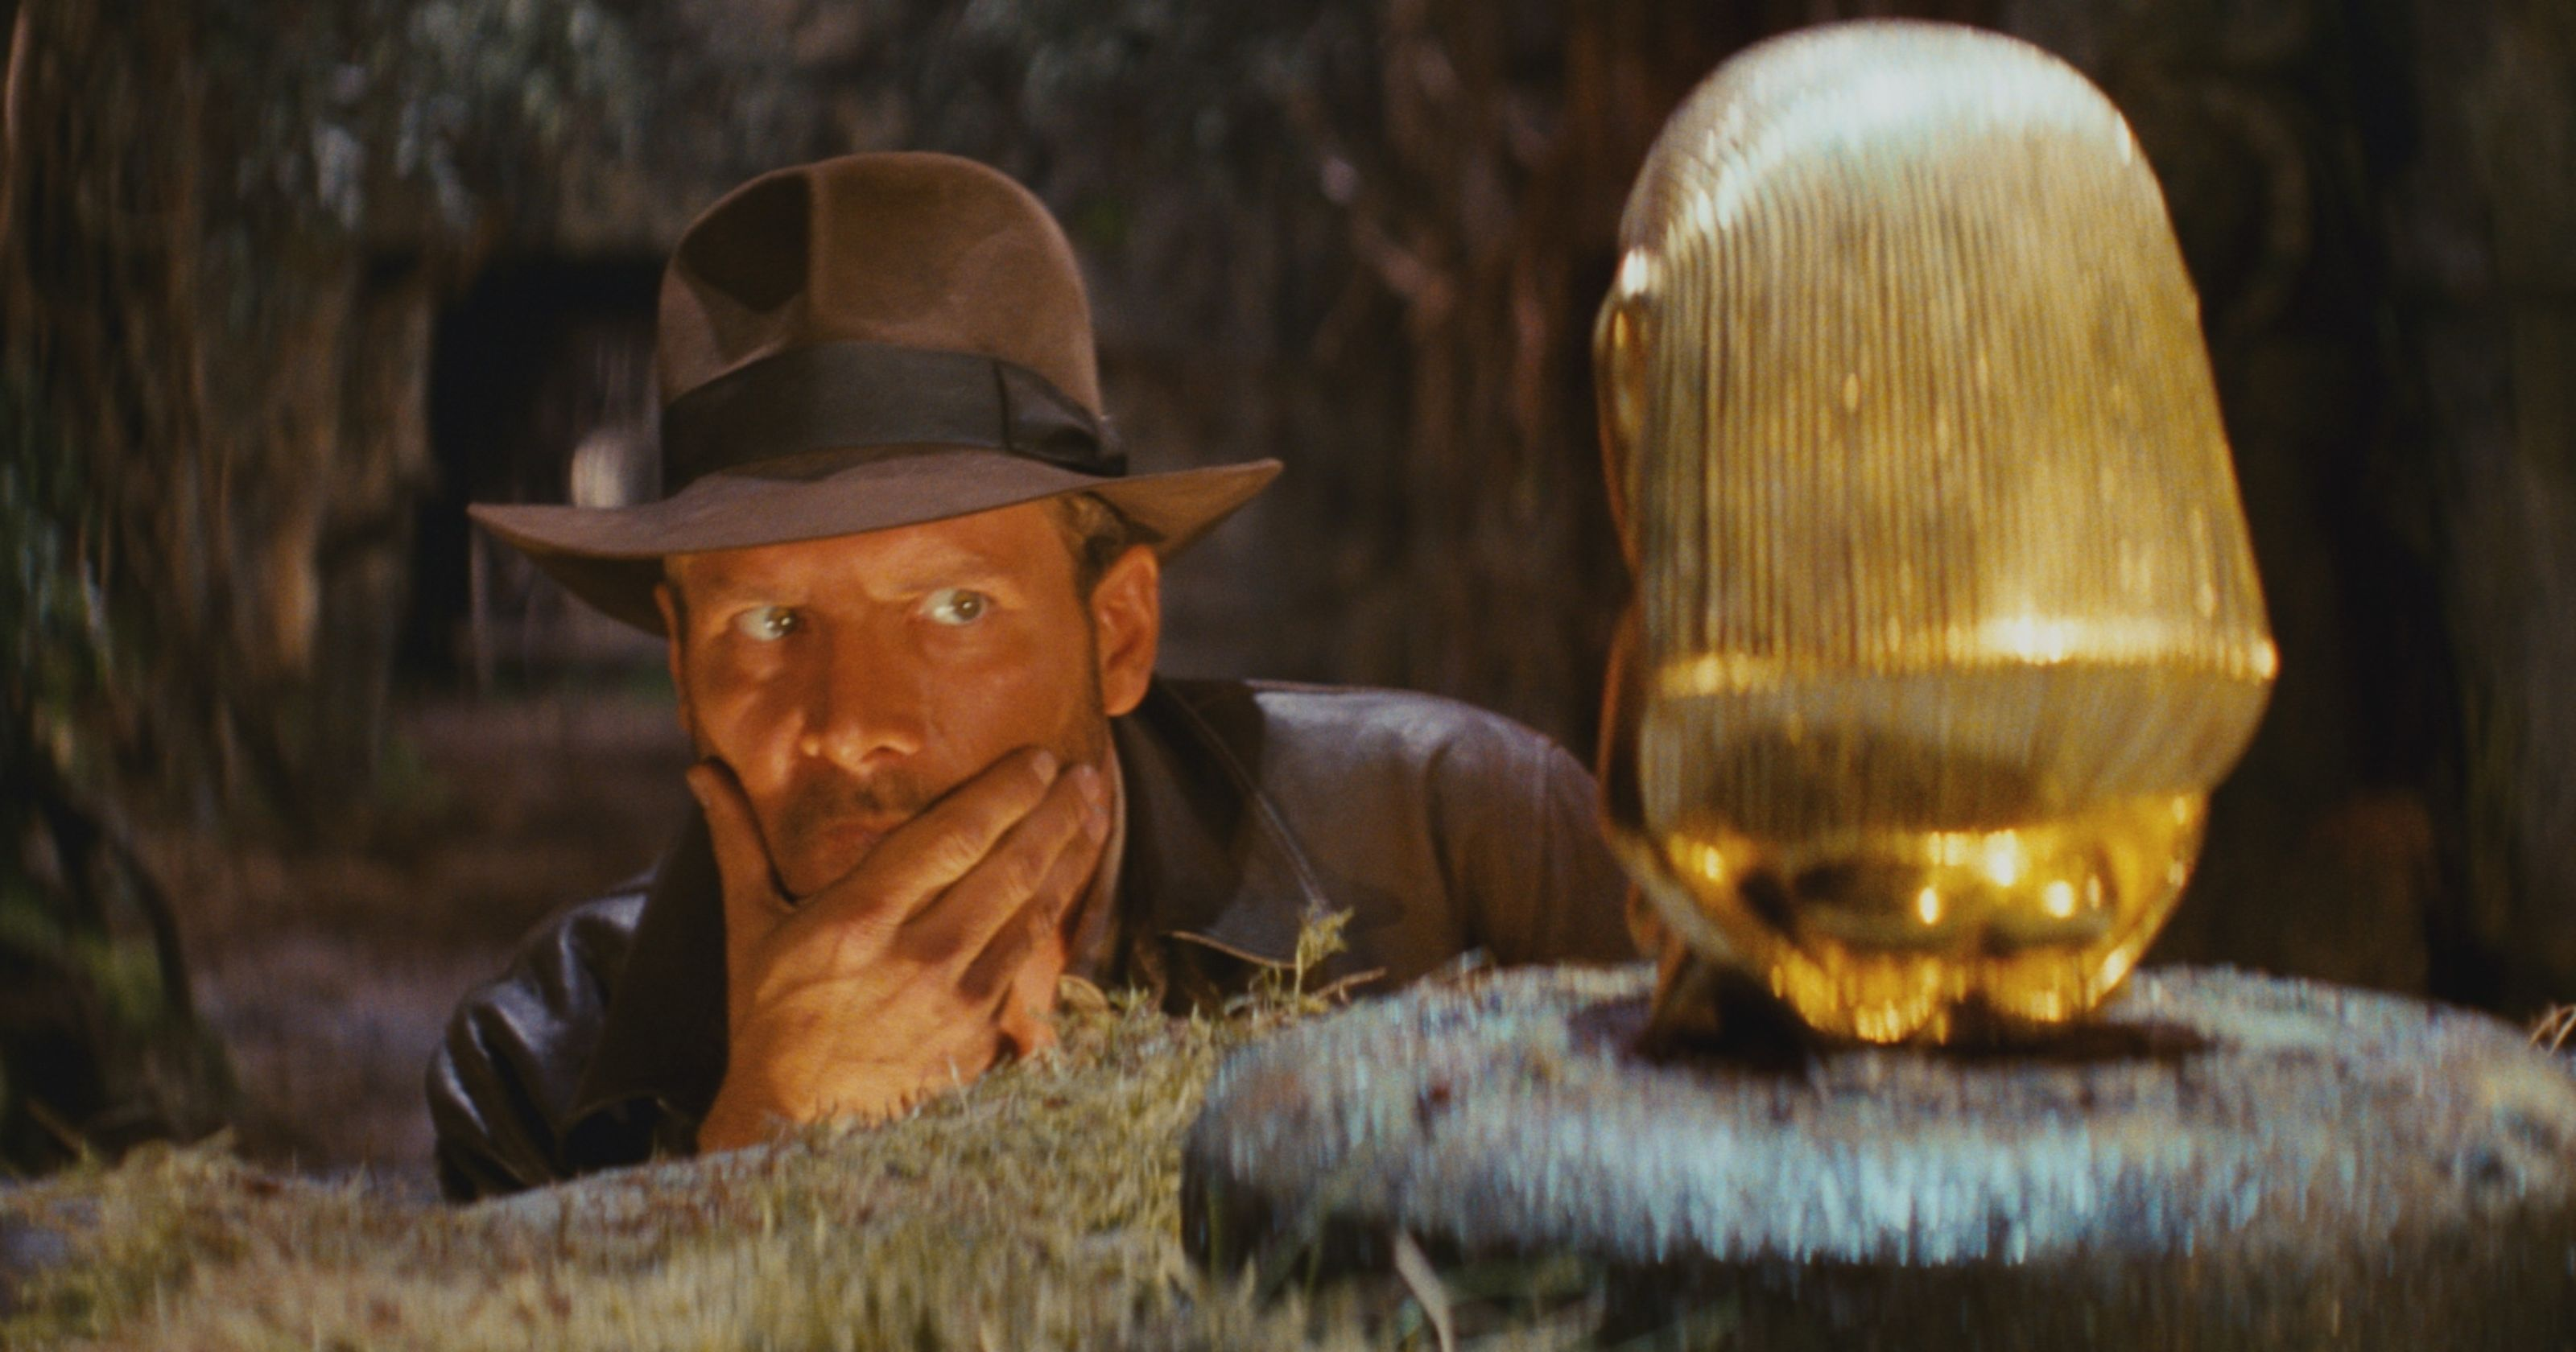 Steven Spielberg Reveals Indiana Jones 5 to Begin Filming in April 2019